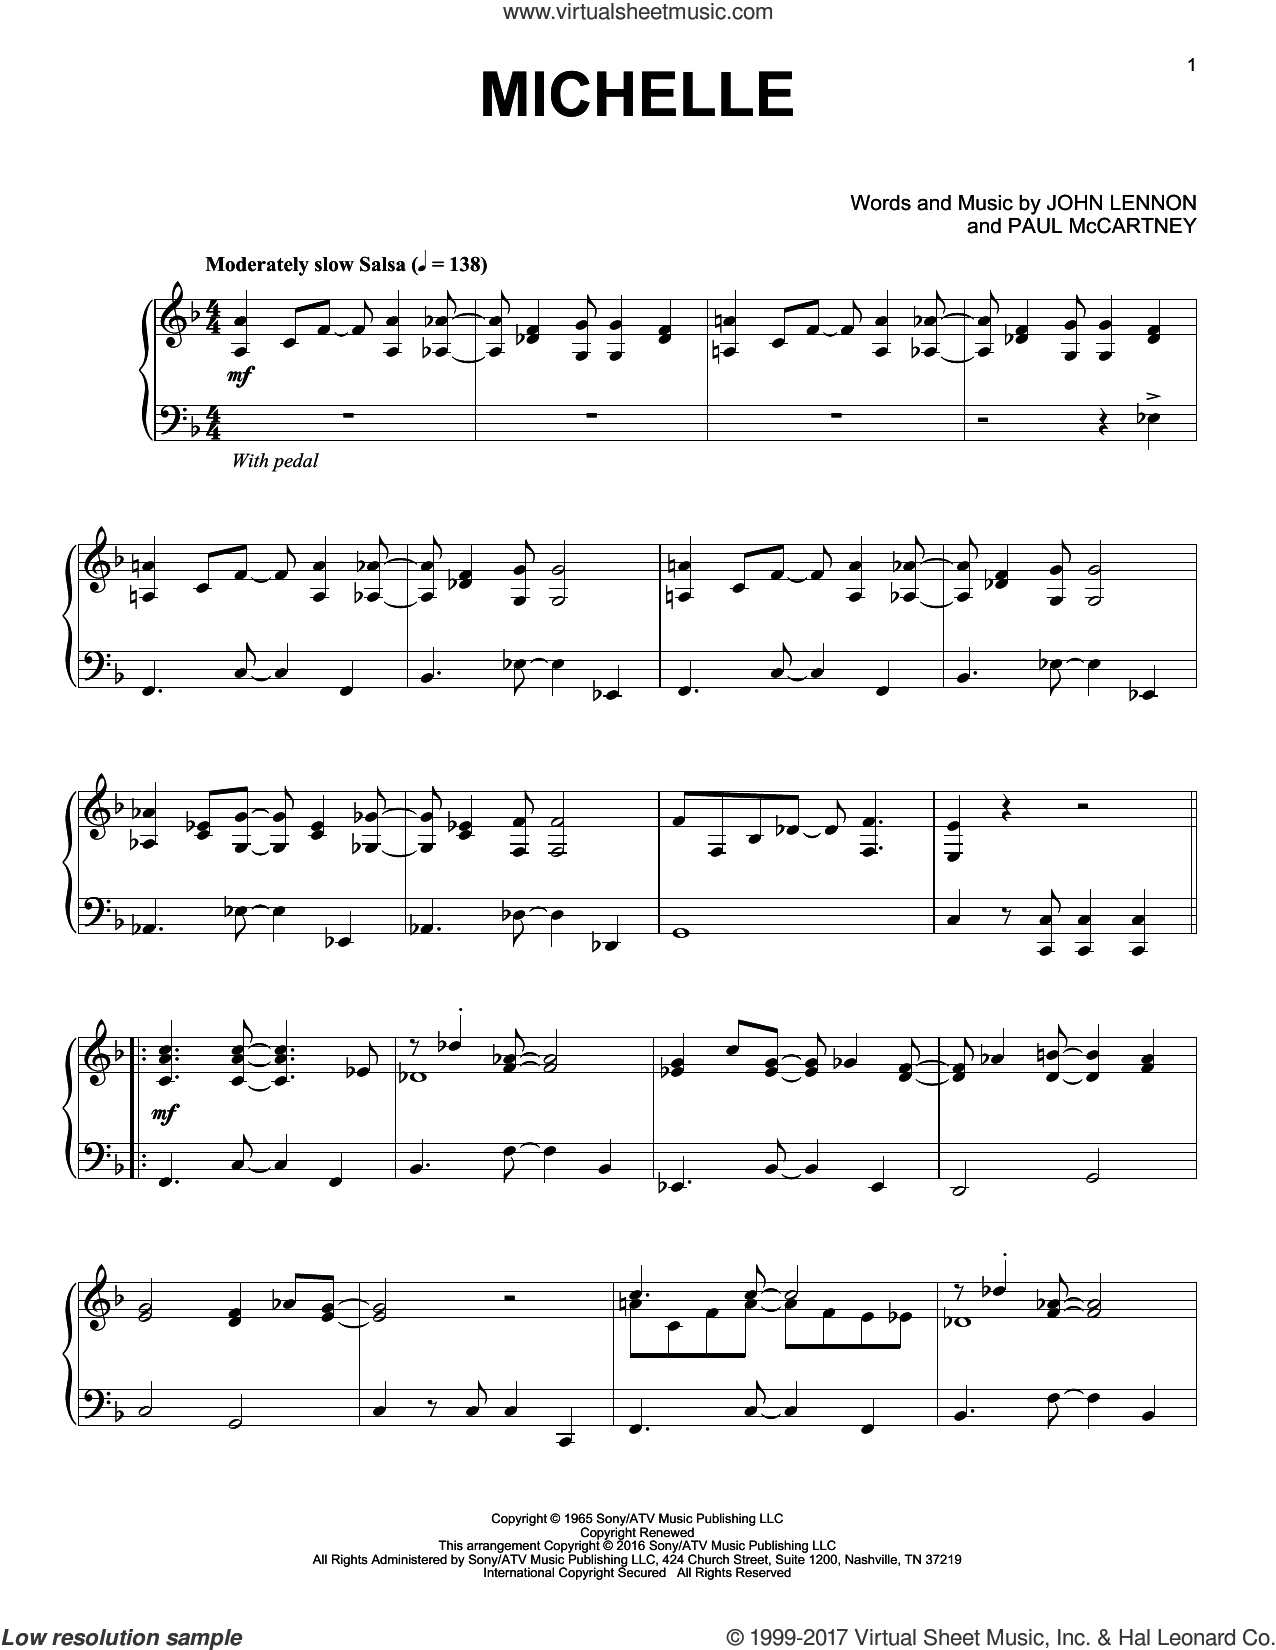 Michelle [Jazz version] sheet music for piano solo by The Beatles, John Lennon and Paul McCartney, intermediate skill level